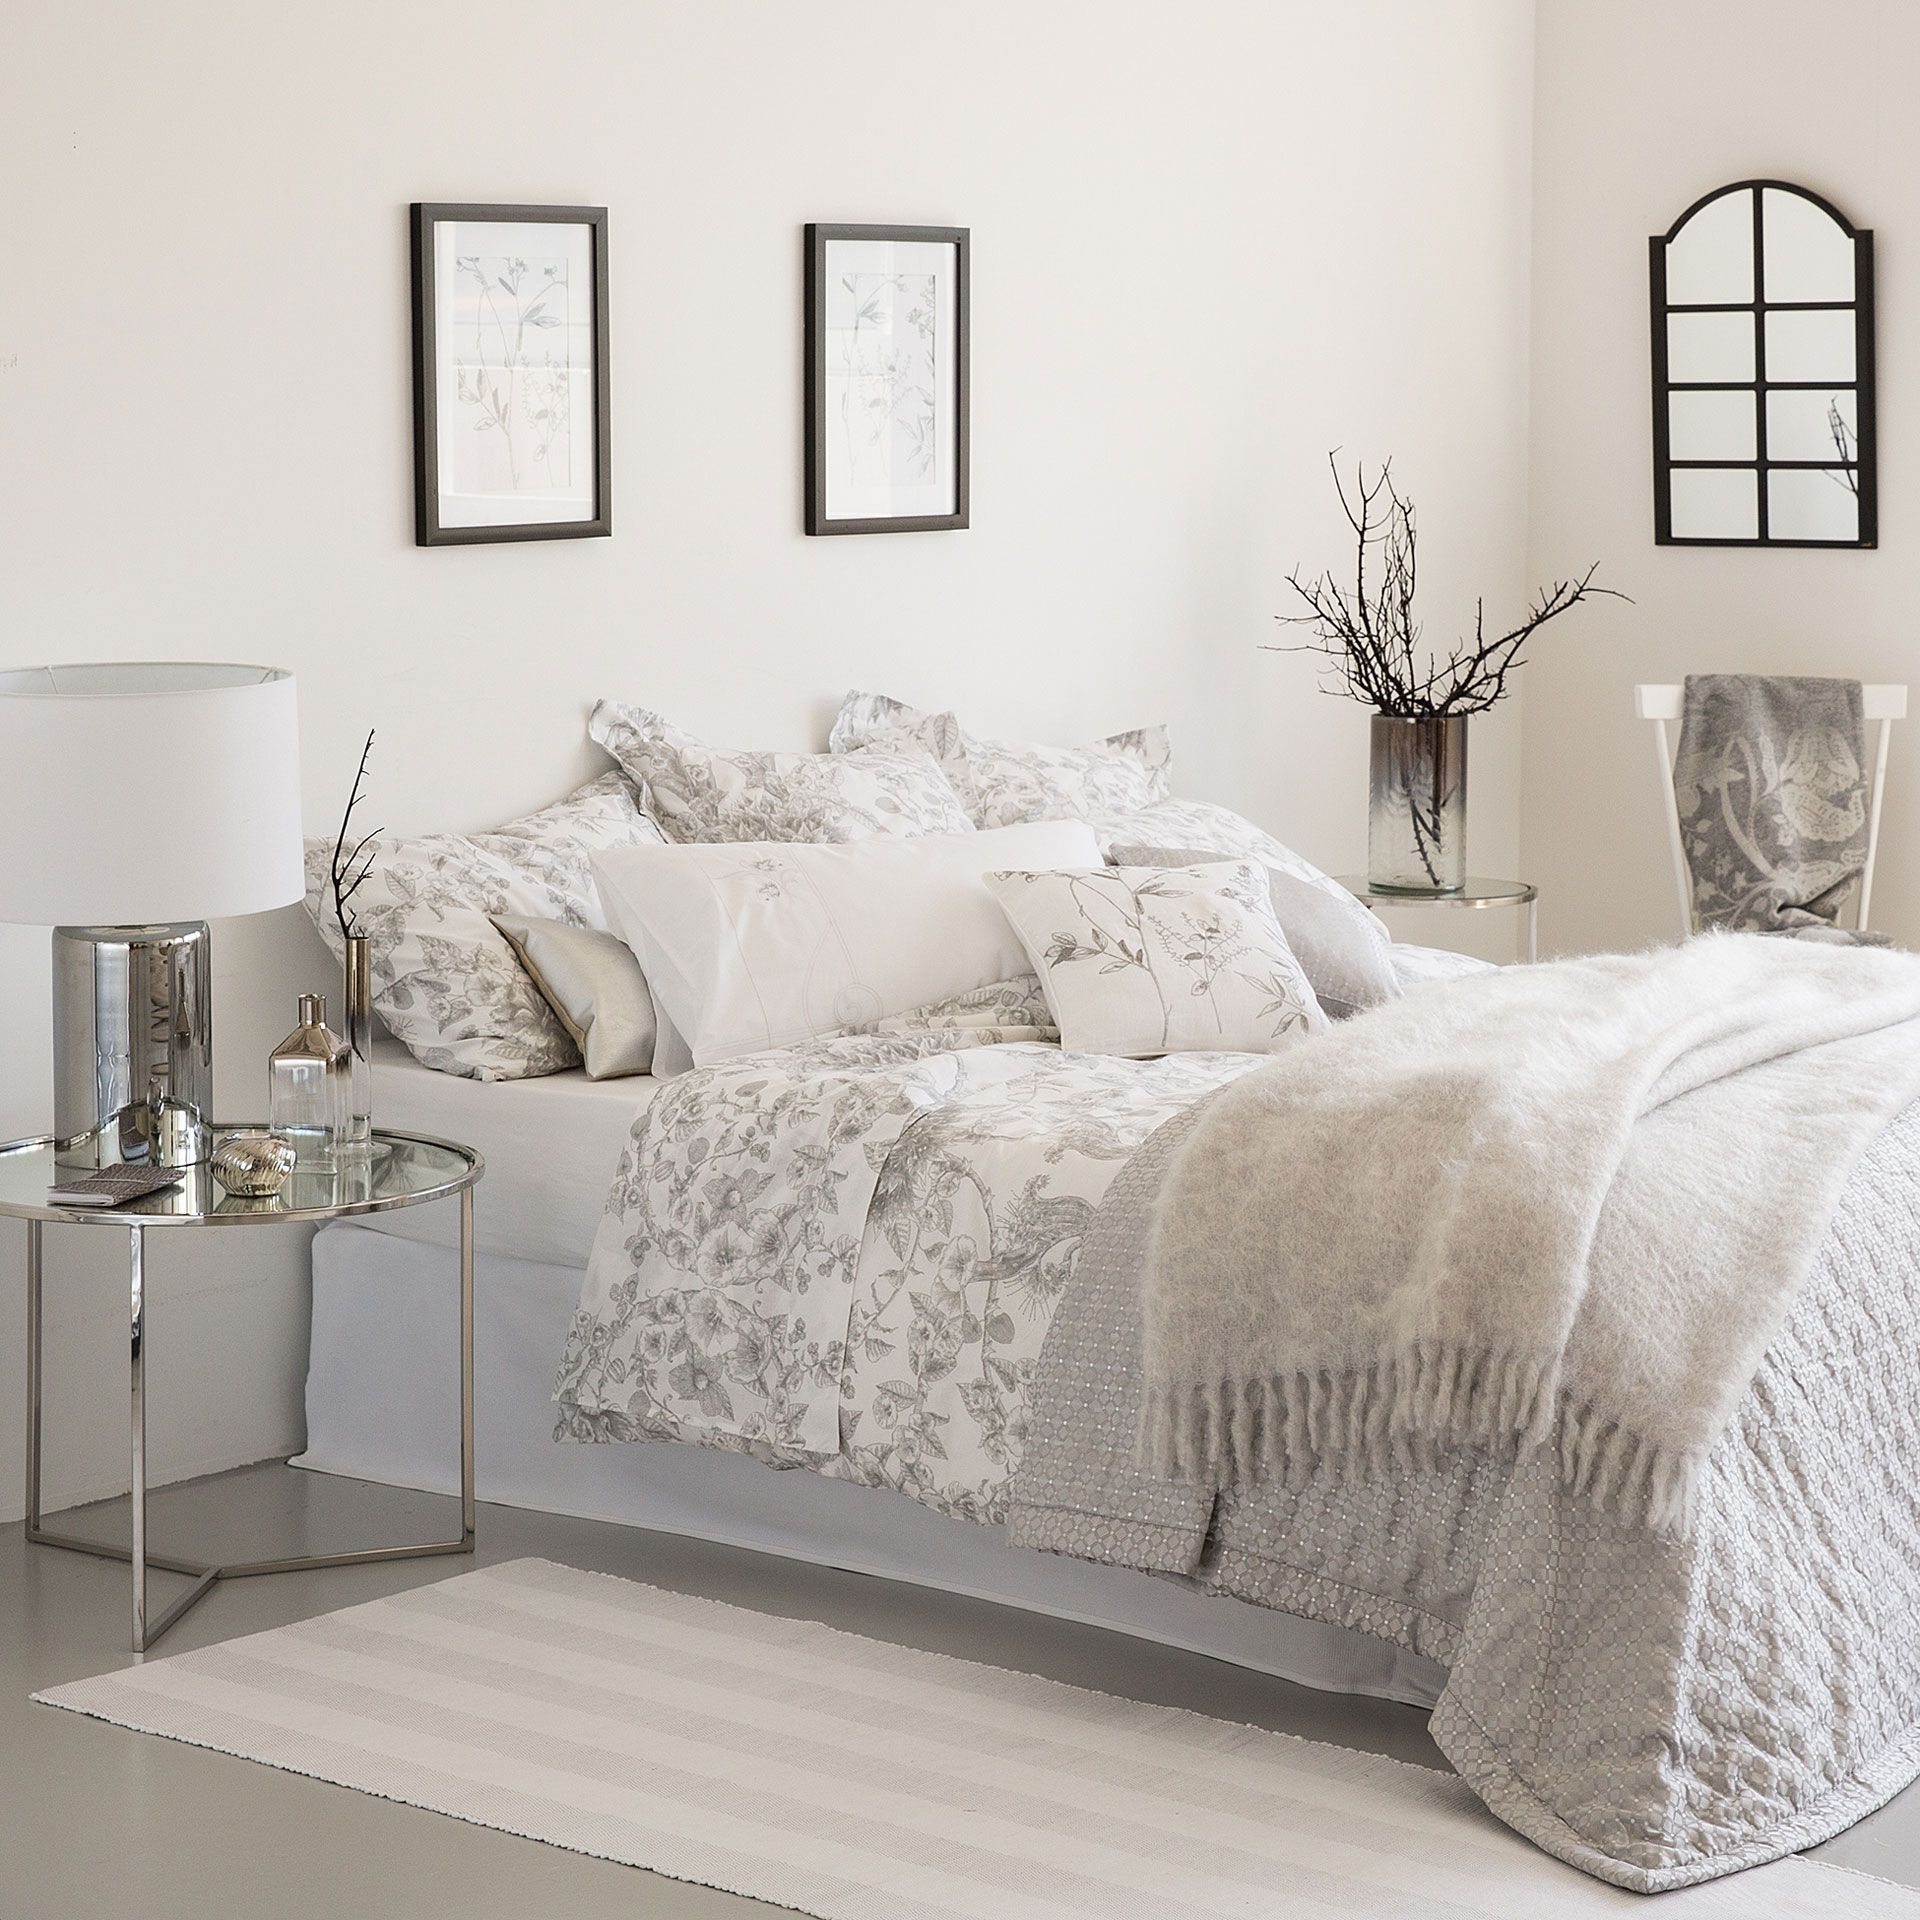 s banas y fundas estampado floral. Black Bedroom Furniture Sets. Home Design Ideas